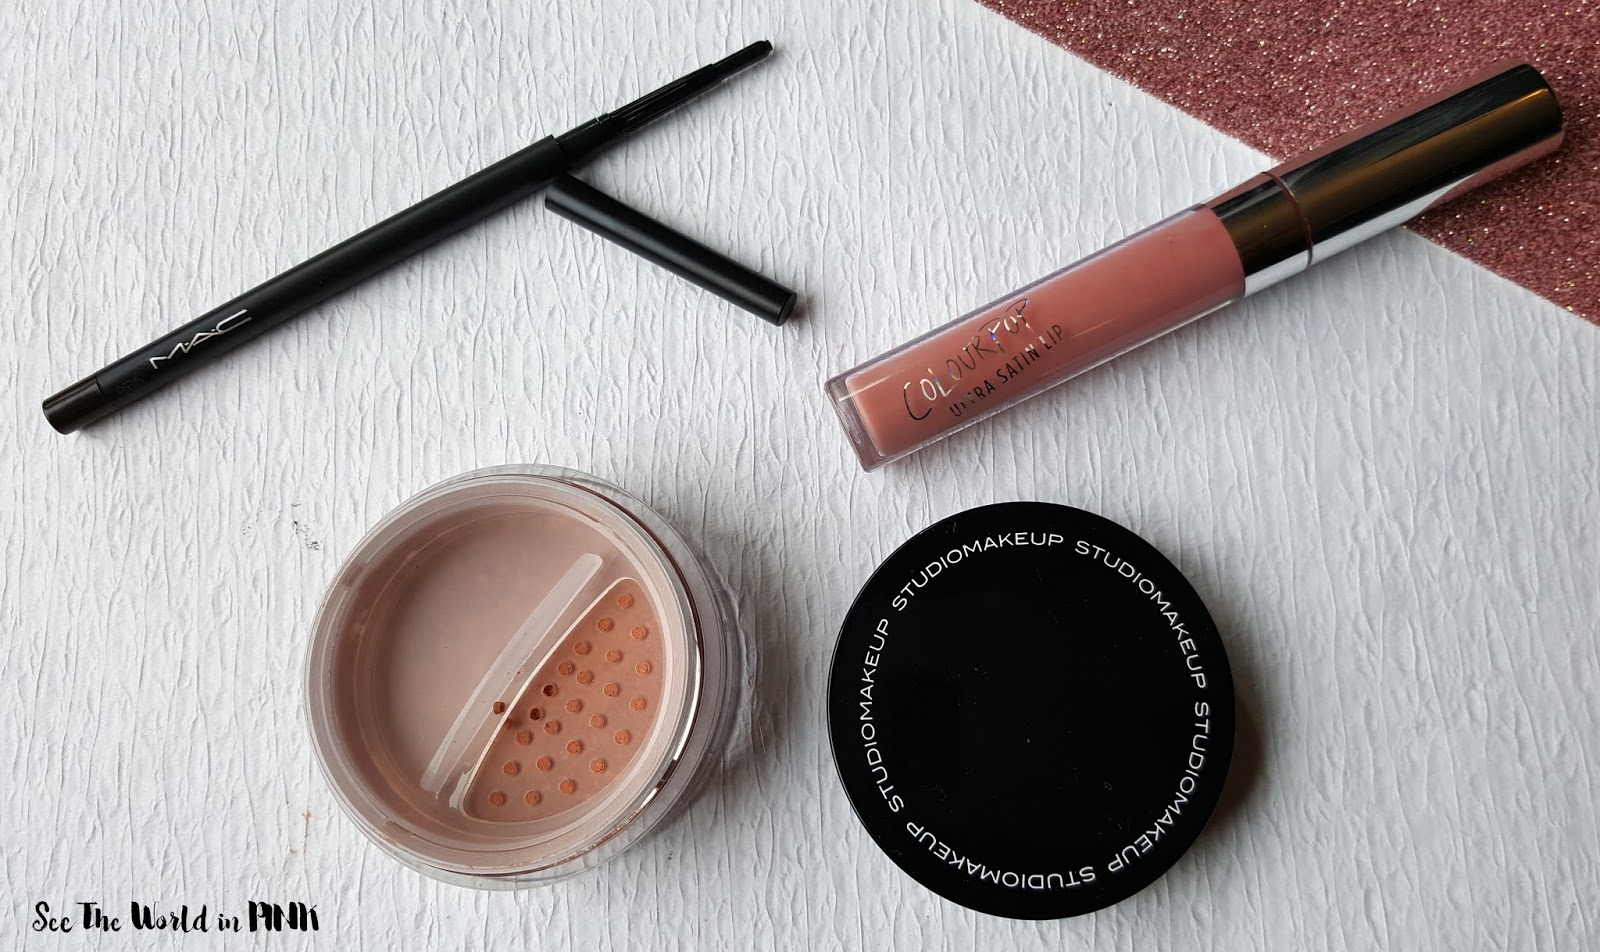 September 2017 - Boxycharm Unboxing, Review, Swatches and Makeup Try-on!